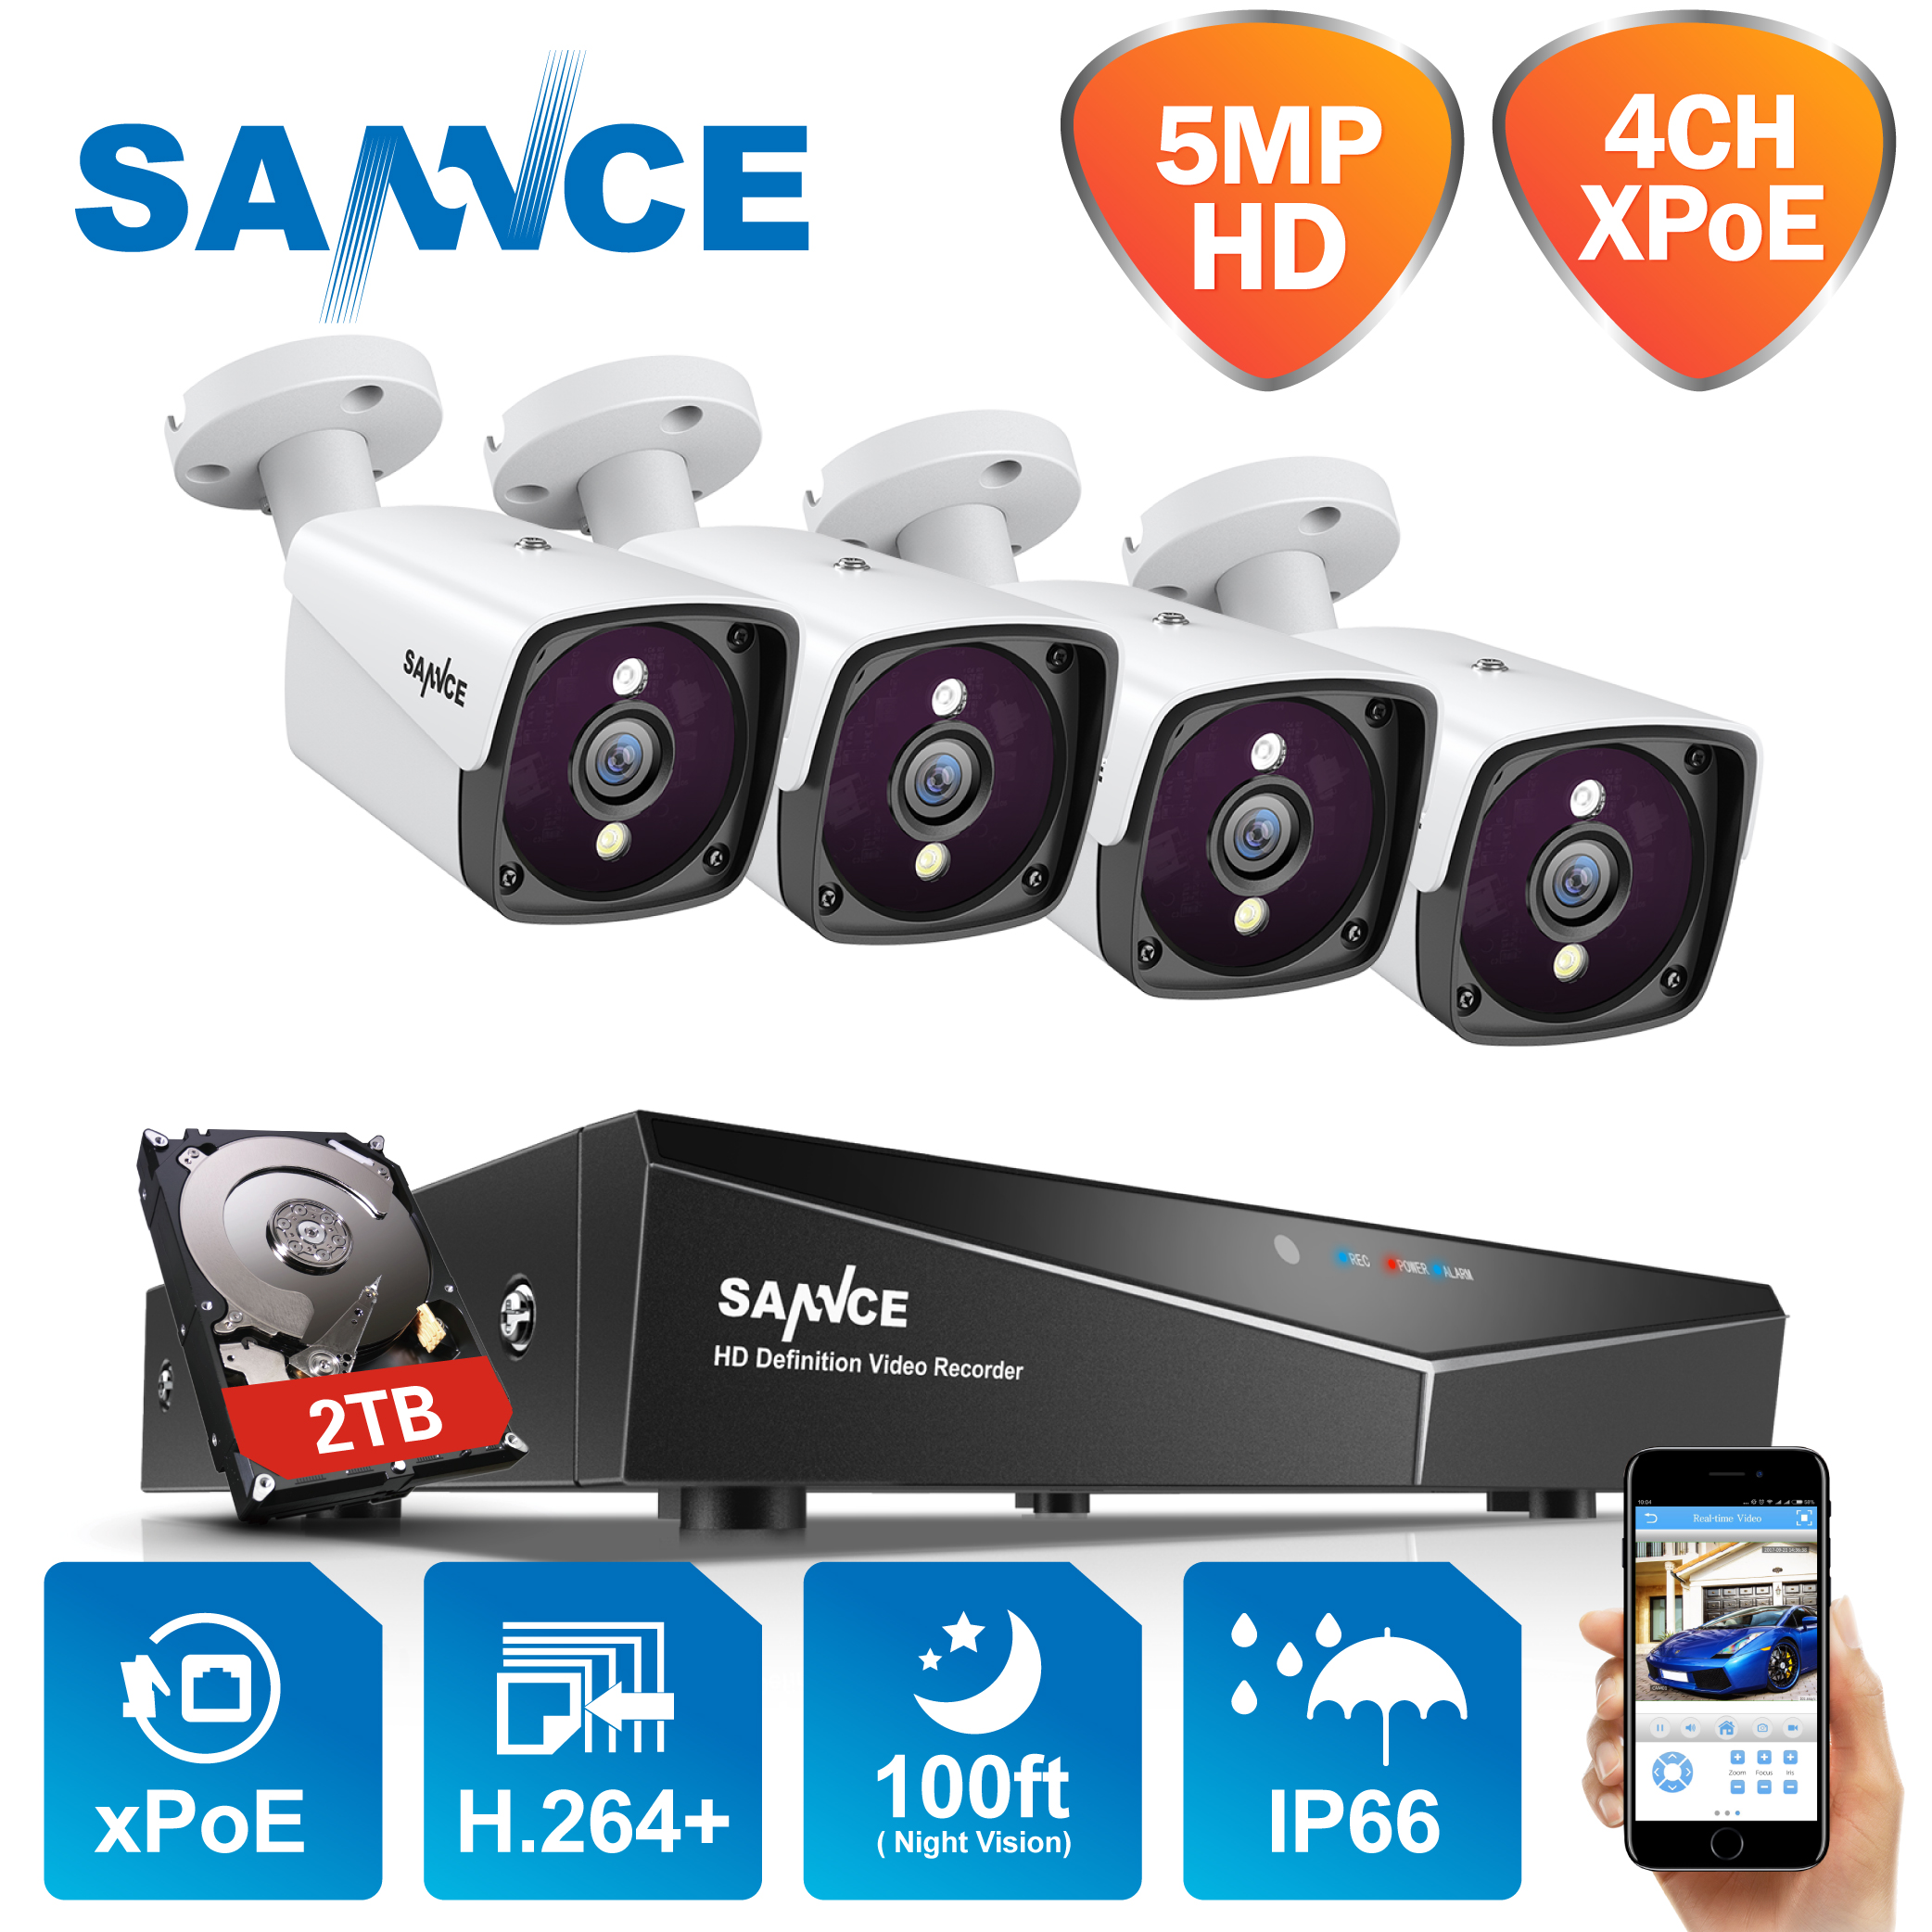 SANNCE 4CH 5MP XPOE Video Security System H.264+ NVR With 5MP 100ft Night Vision IP Outdoor Waterproof Surveillance CCTV Camera